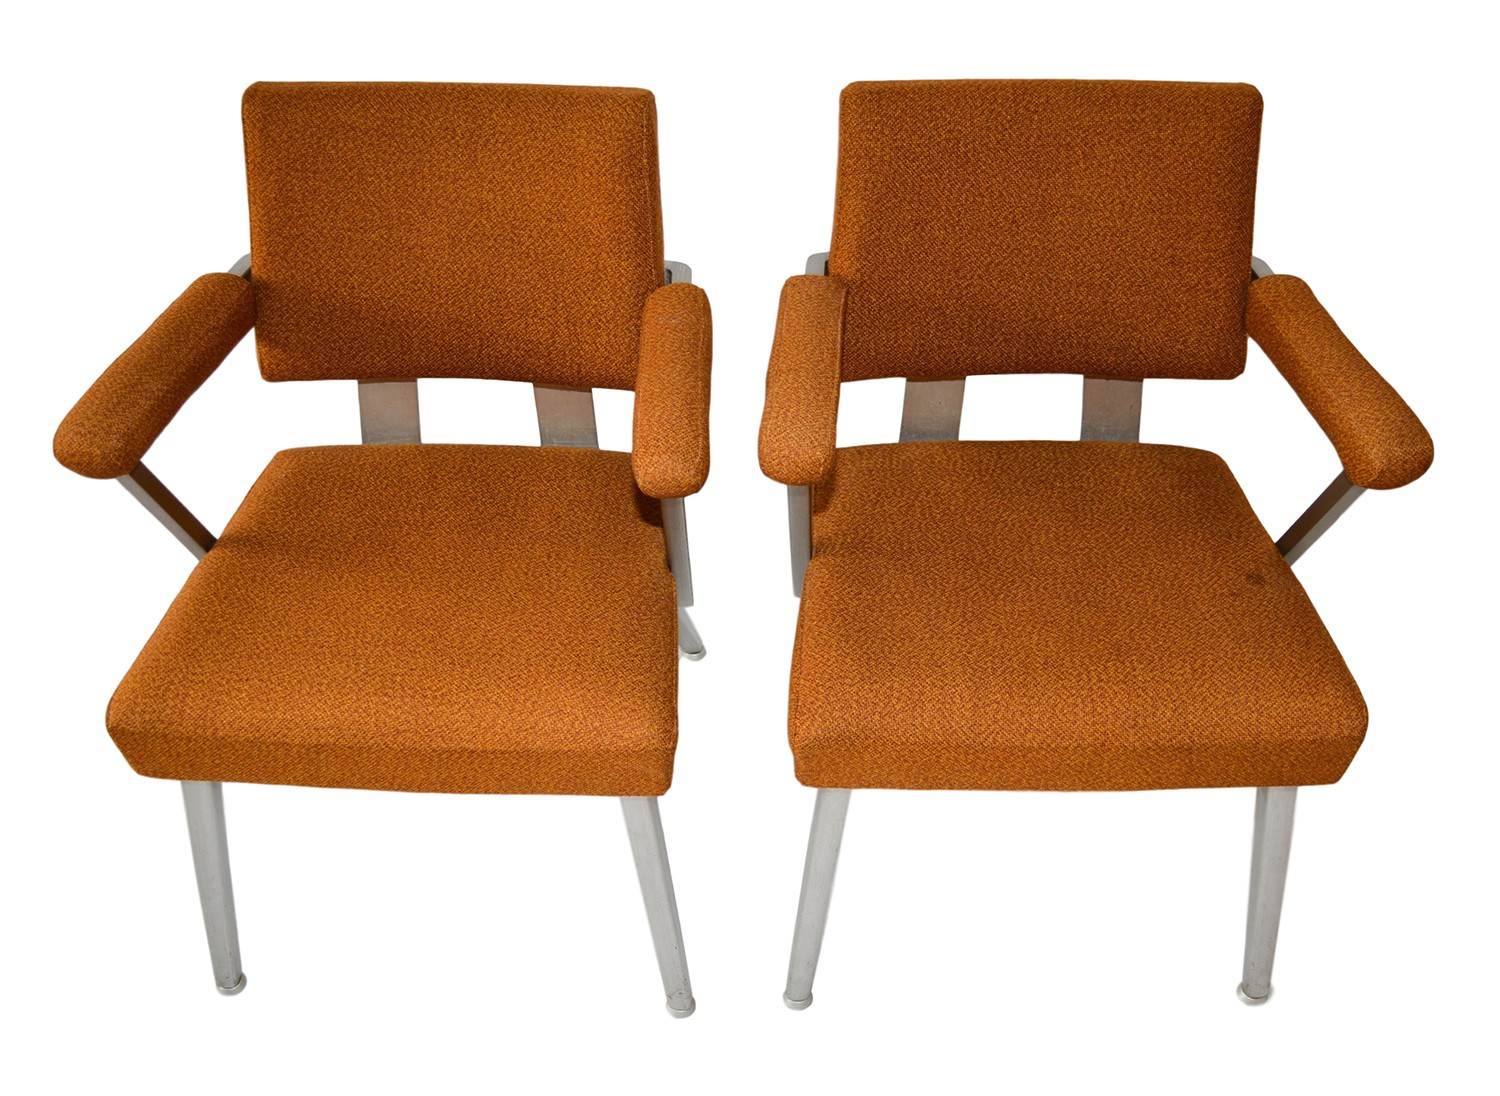 modern aluminum chair multi seat folding chairs pair mid century general fireproofing good form